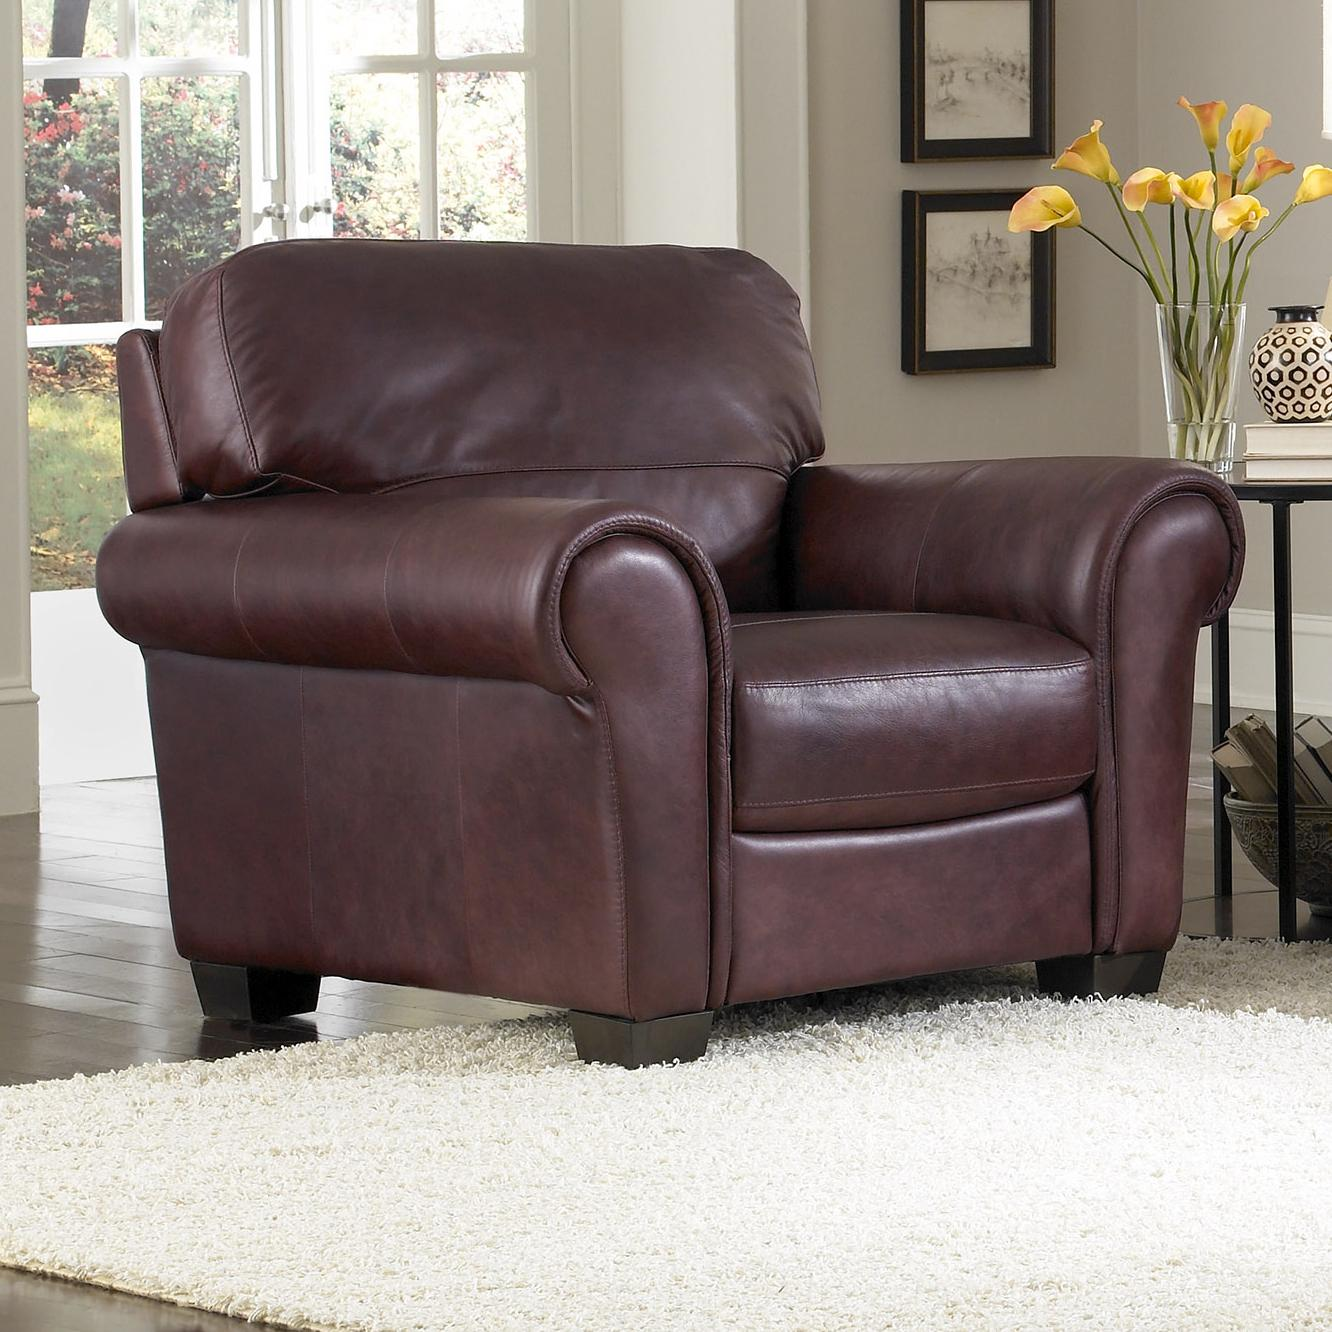 Belfort Select Casserly Chair - Item Number: 2274-AC